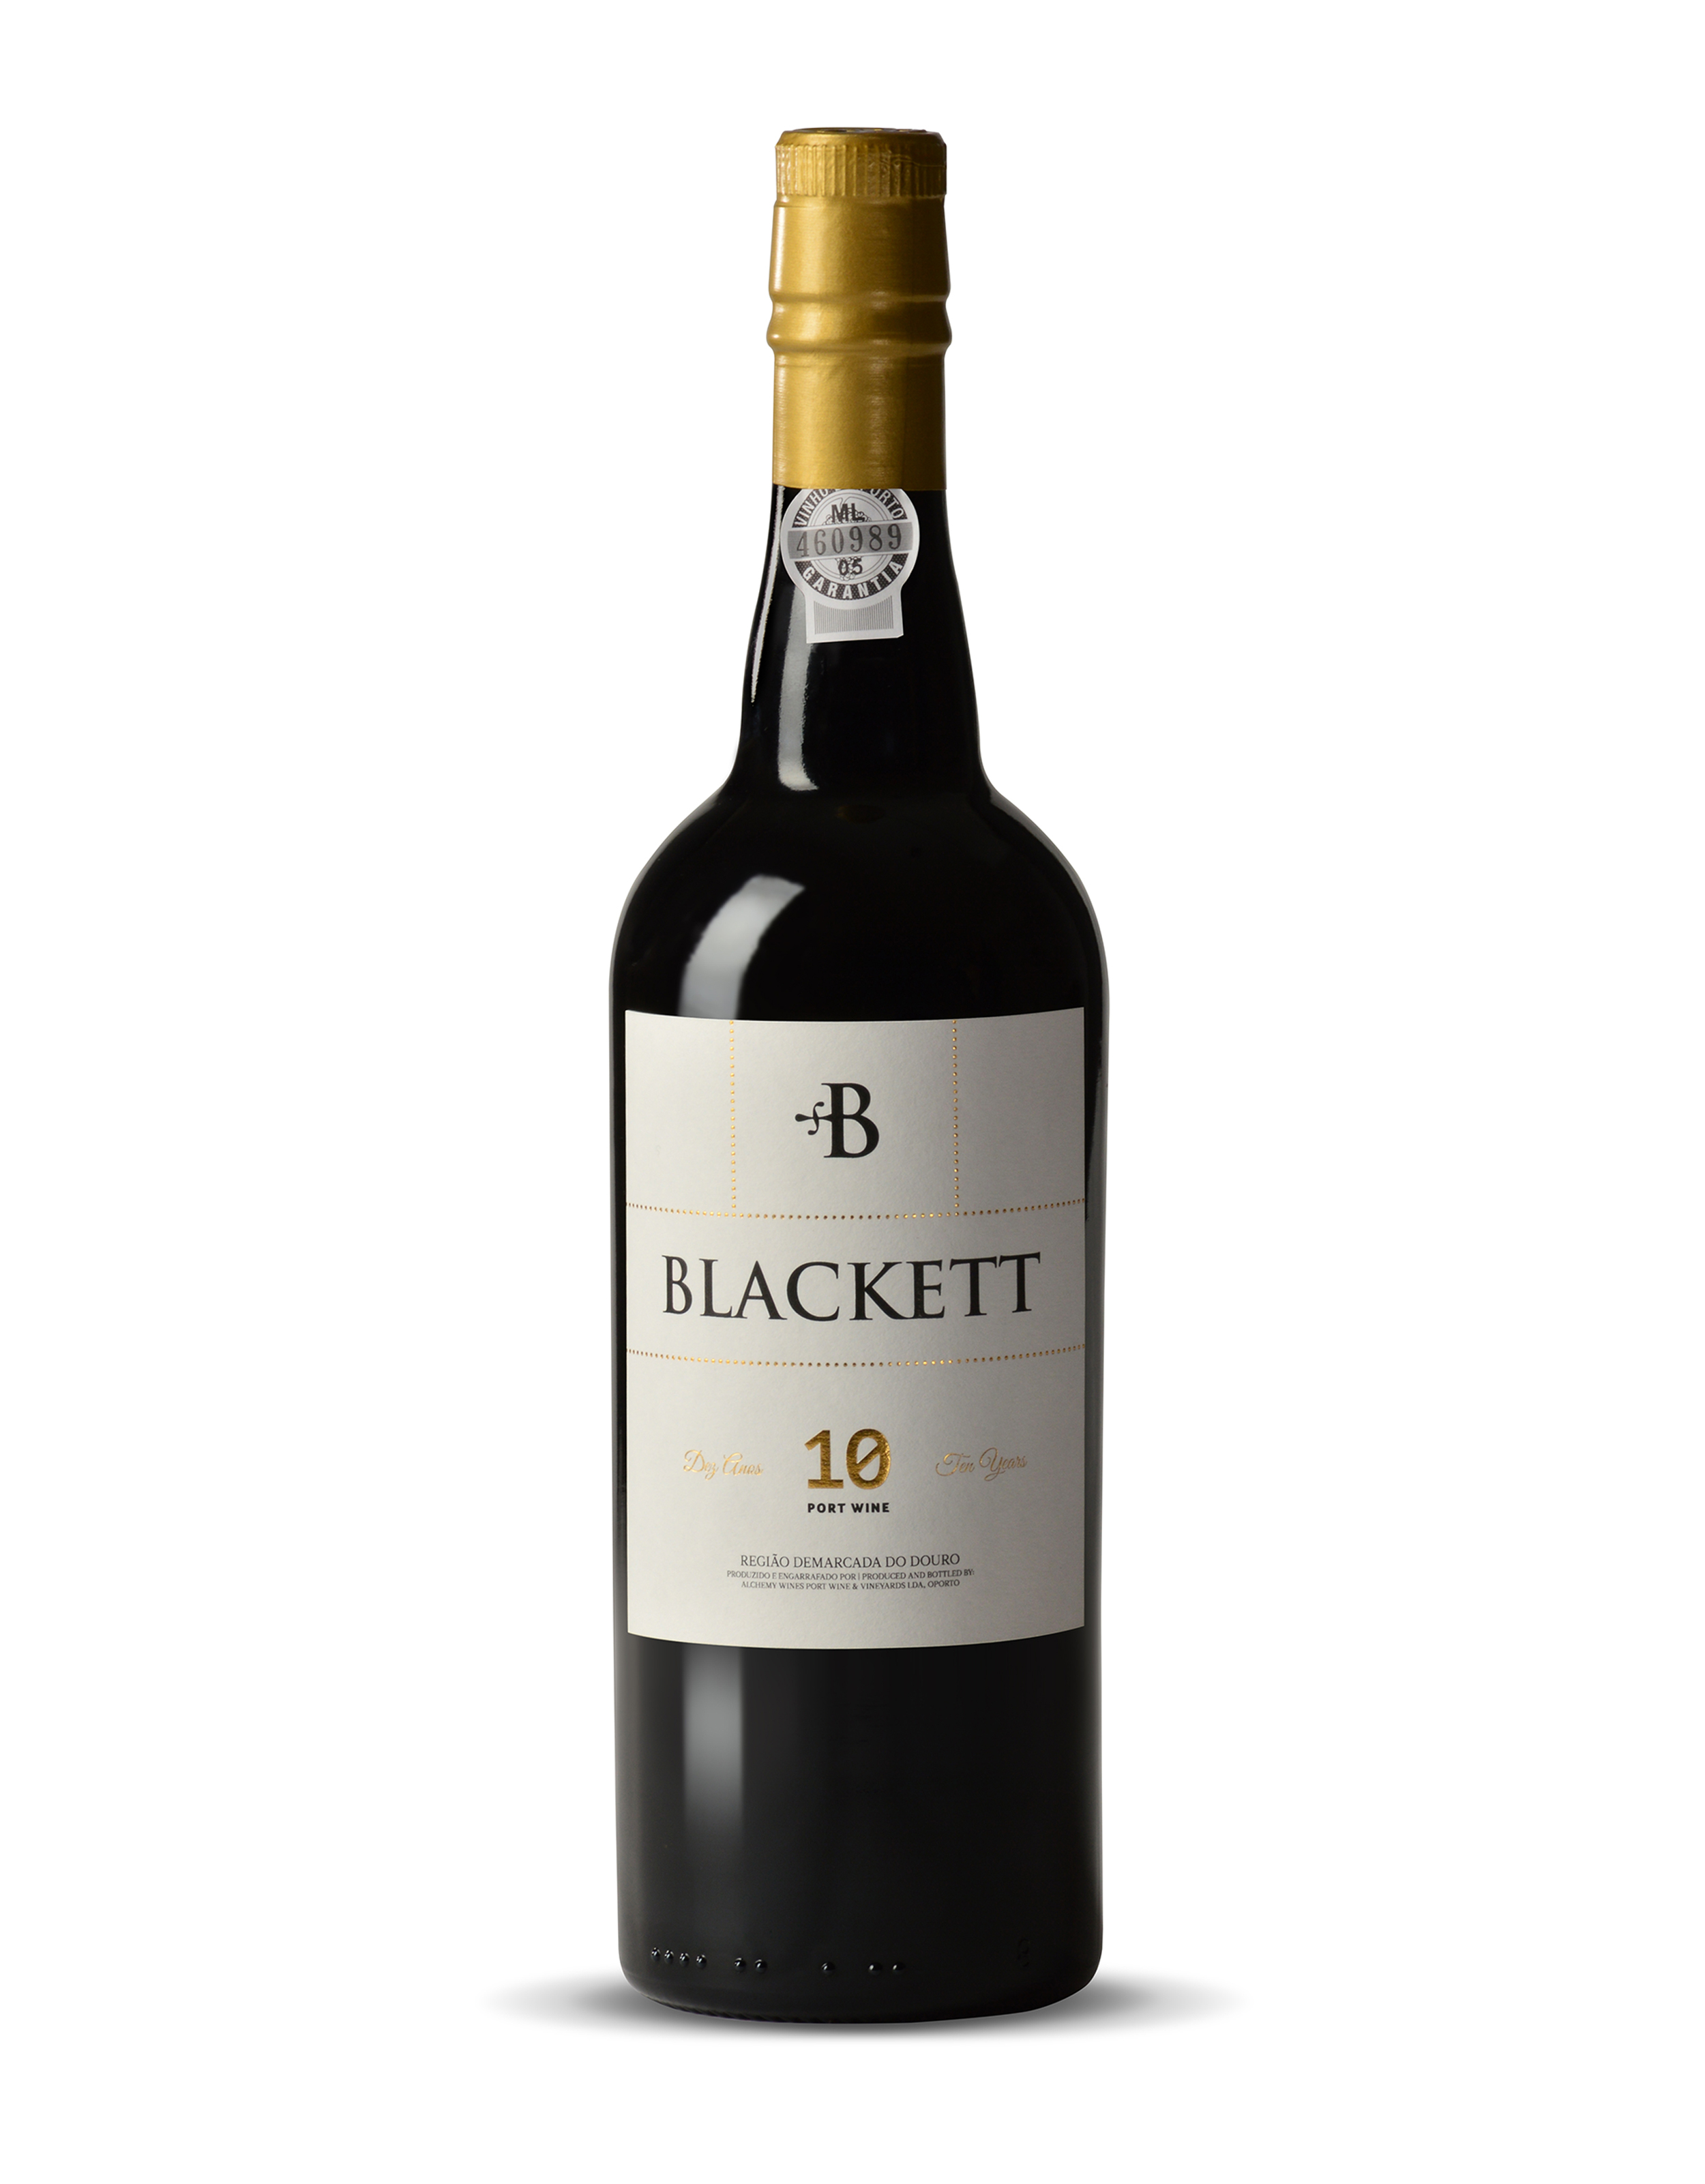 Blackett_10_anos_M.jpg